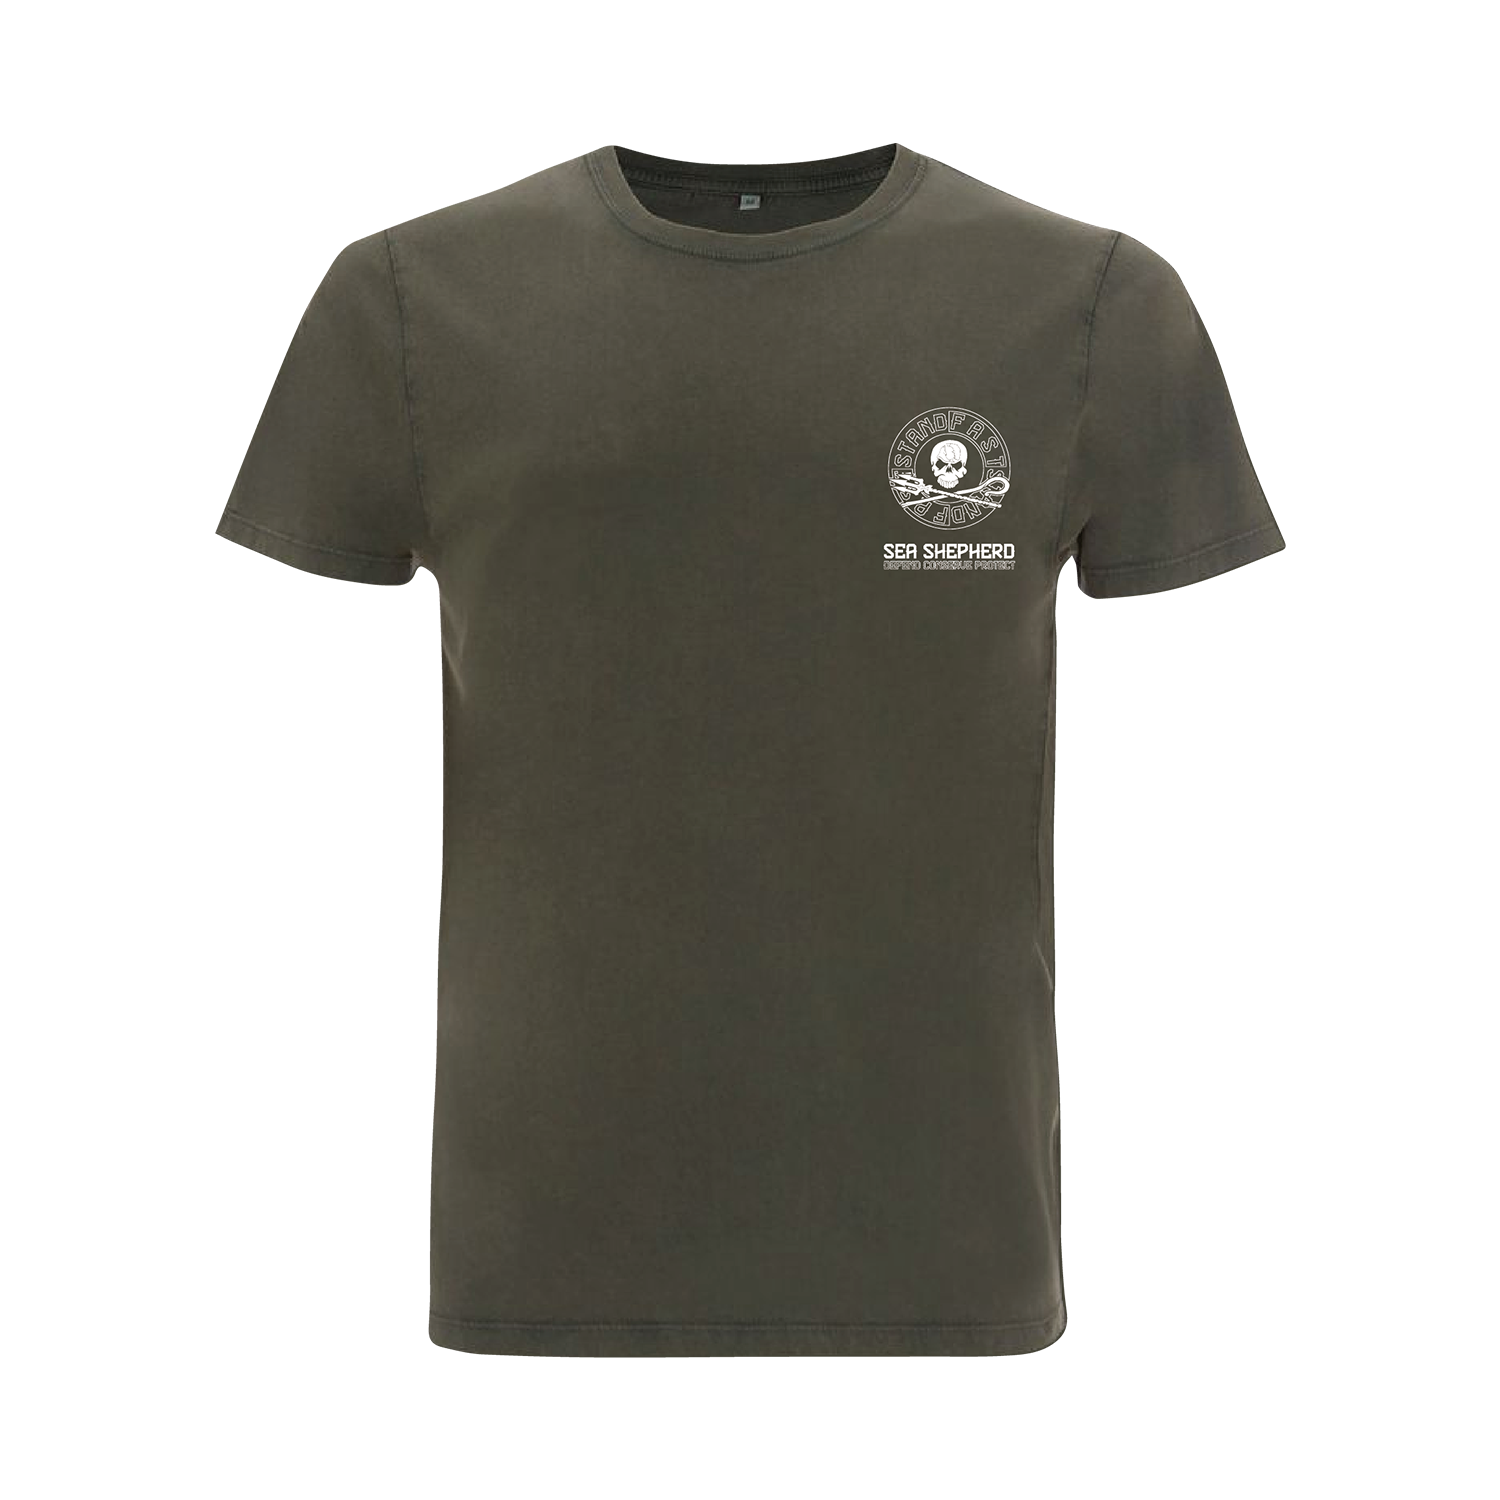 Sea Shepherd - Standfast - Ships Cargo Stamp - 100% Organic Cotton S/S Tee - Washed Green